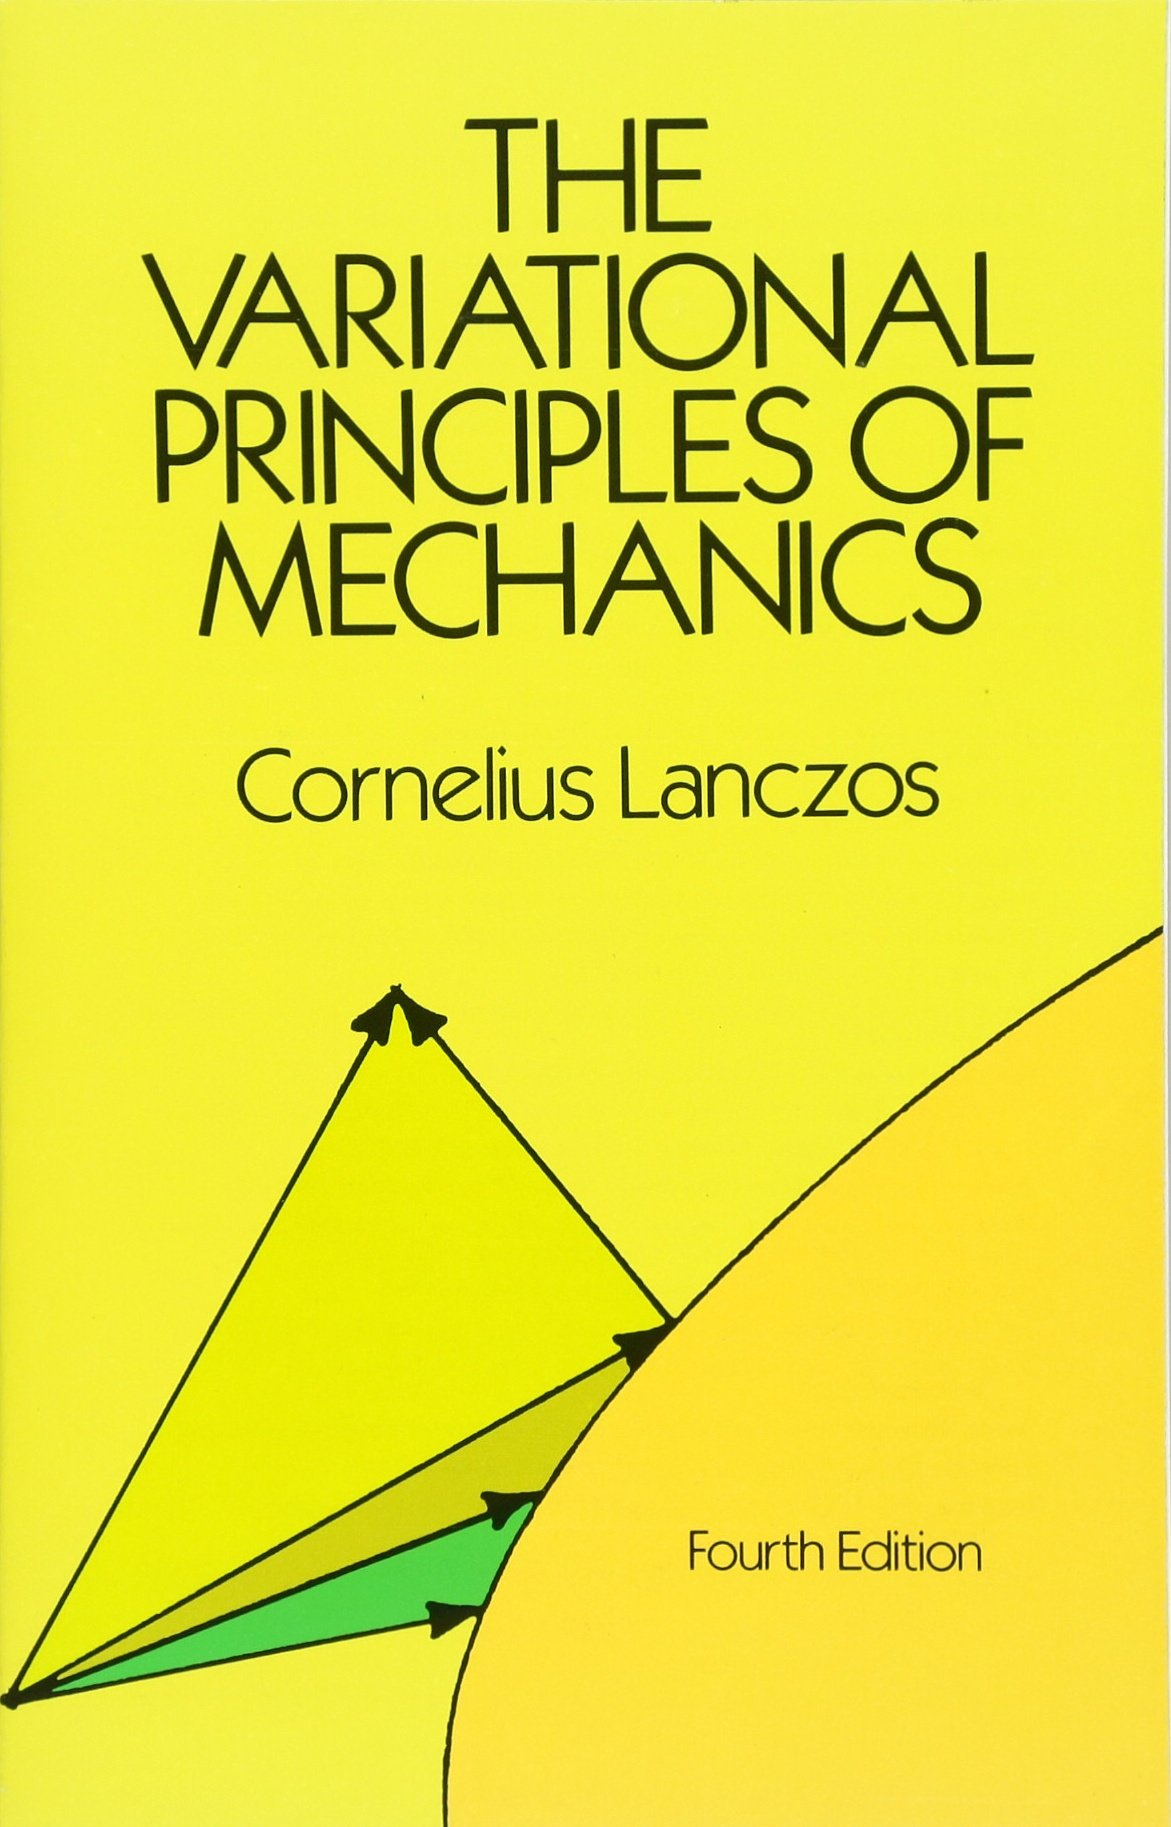 The Variational Principles of Mechanics (Dover Books on Physics & Chemistry) (Dover Books on Physics and Chemistry)